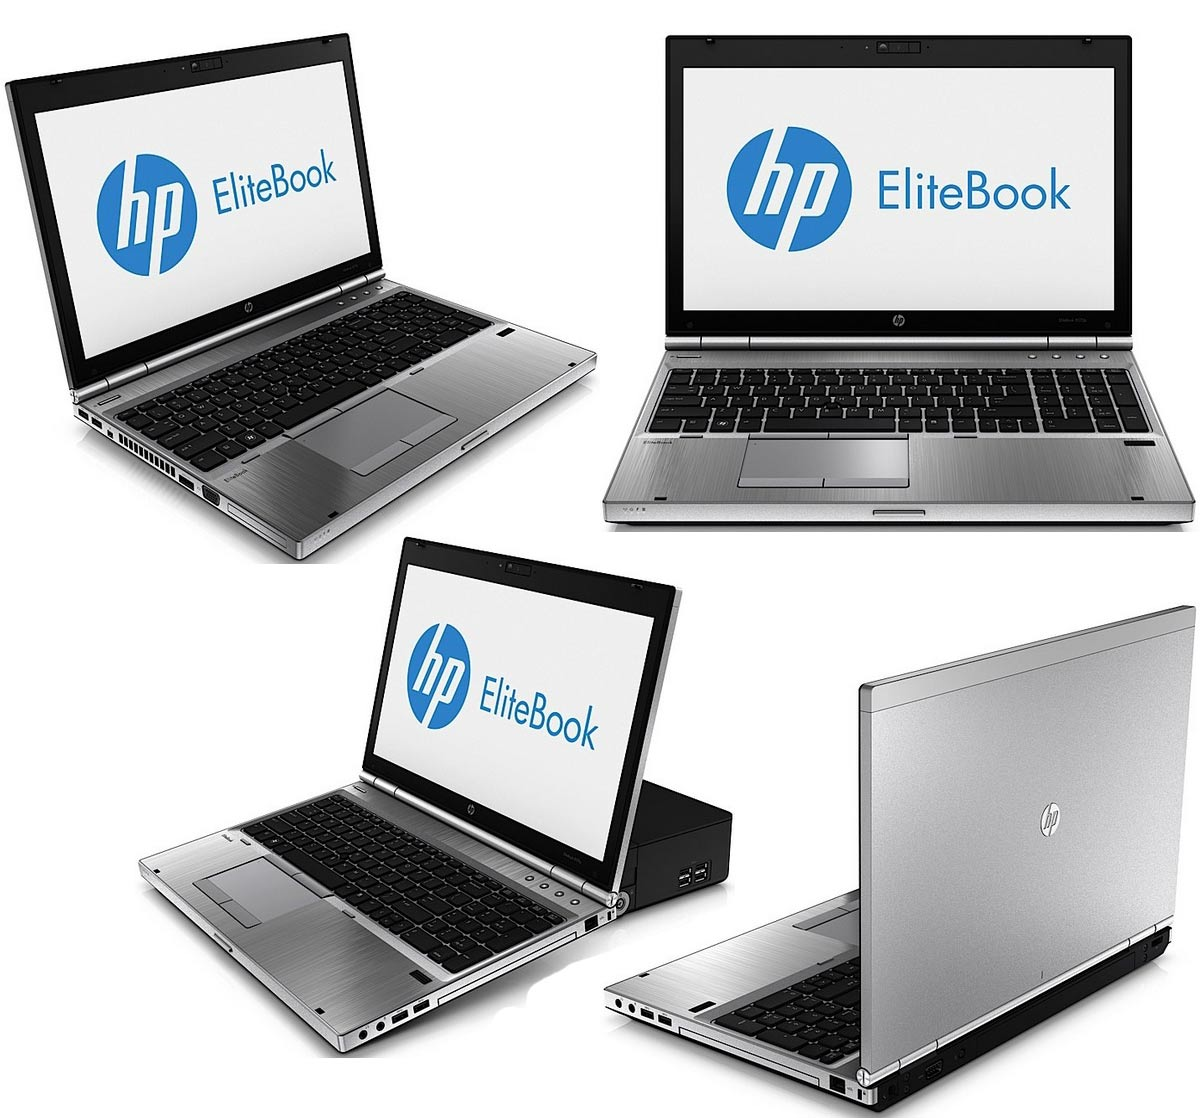 HP Elitebook 8570W Core i7 3720QM RAM 8GB HDD 320GB CARD VGA K1000M